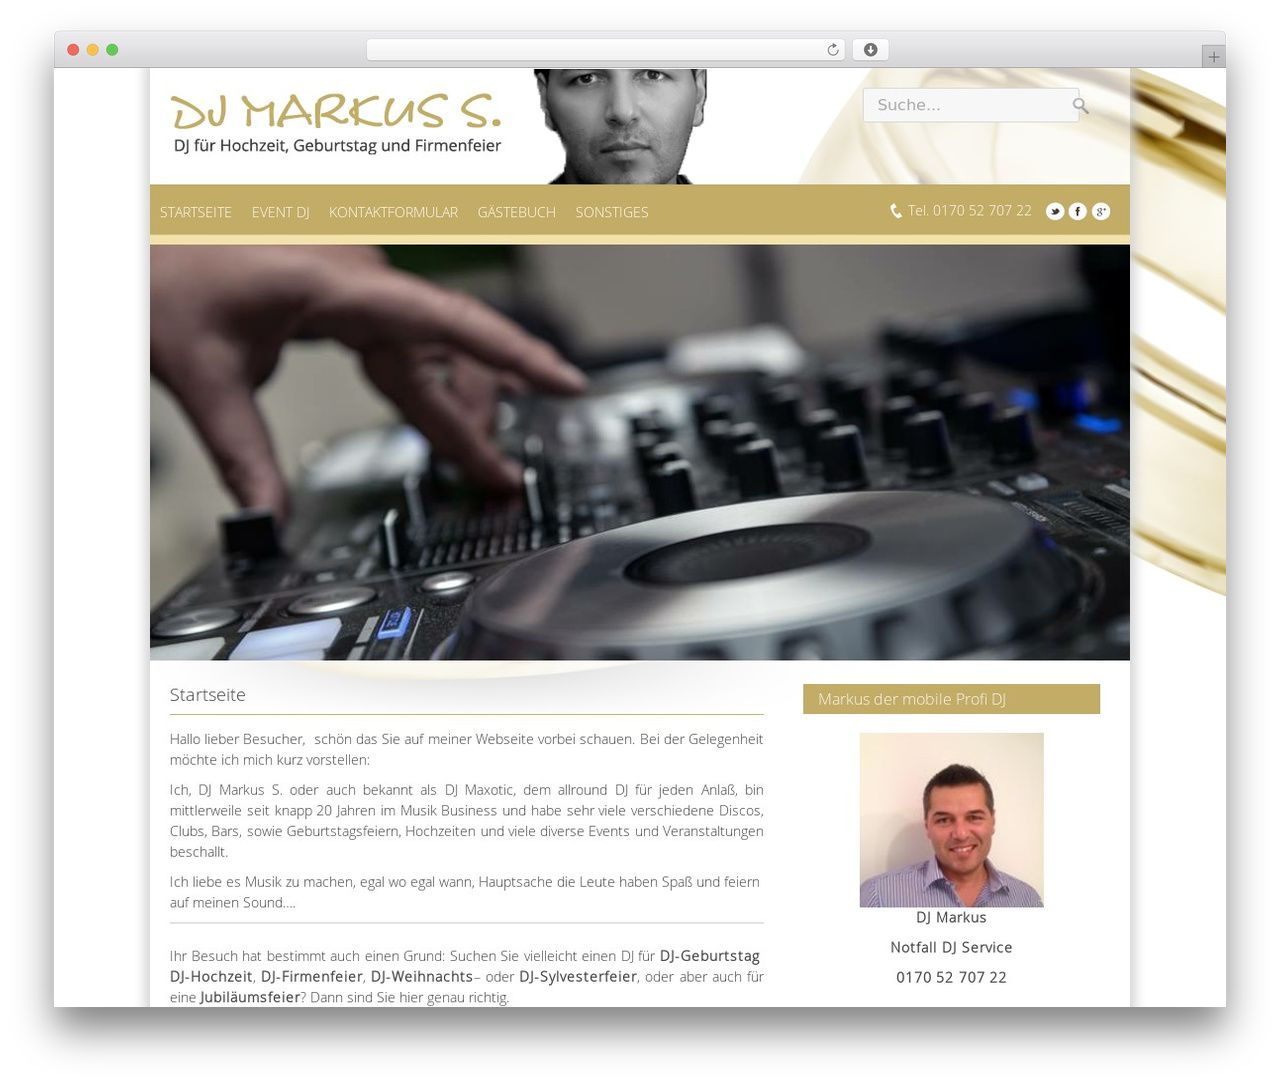 Wedding Dj Top Wordpress Theme By Dzinegurus De Dj Hochzeit Regensburg De Wedding Dj Wordpress Theme Top Wordpress Themes